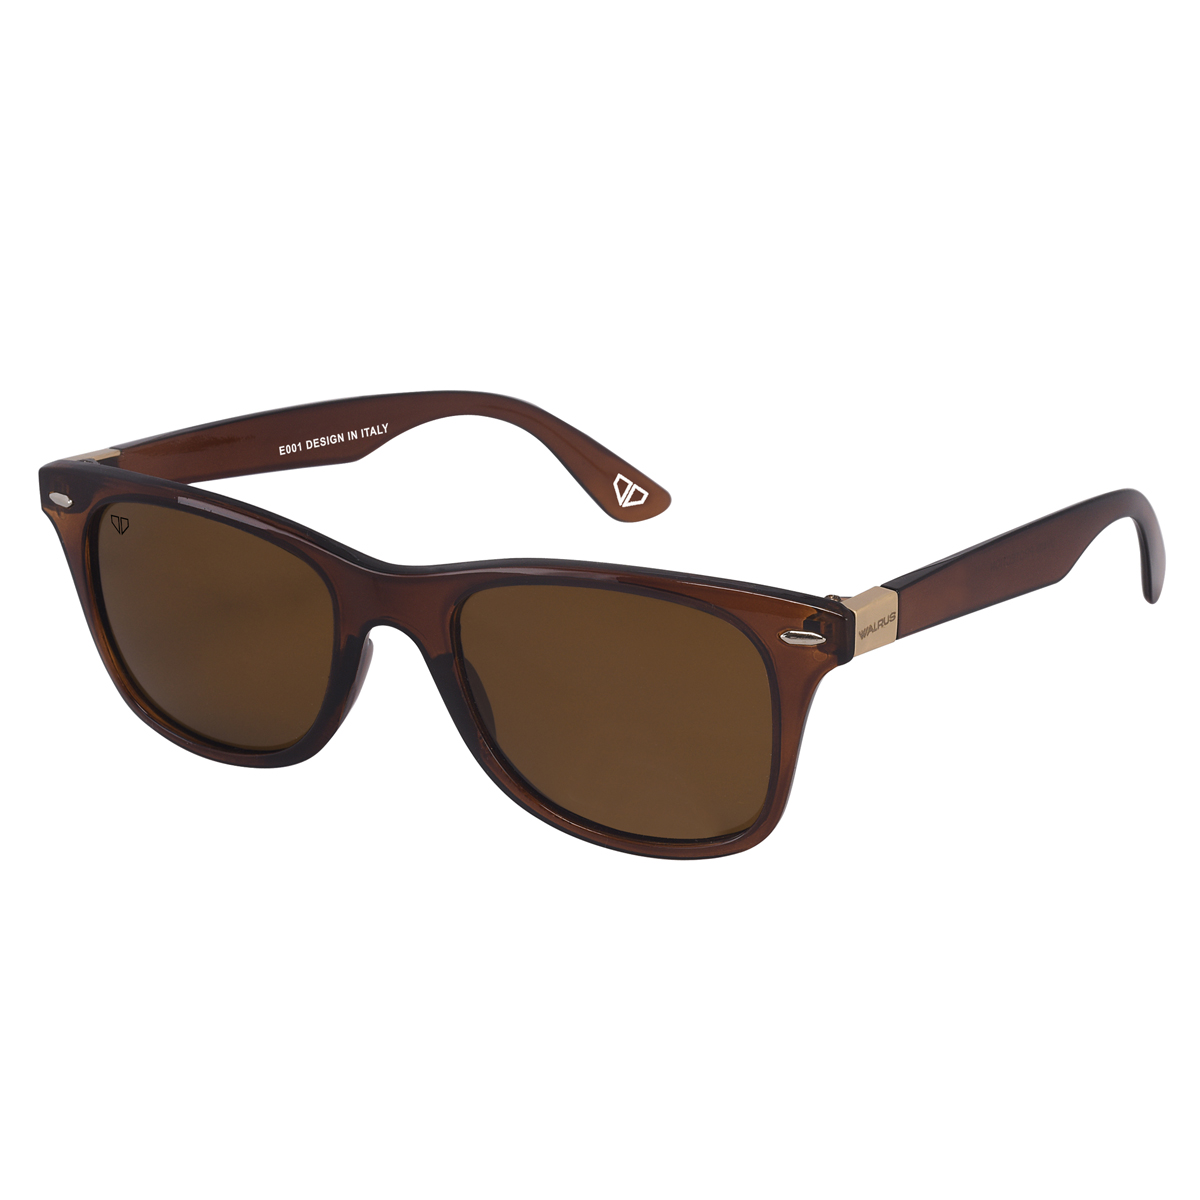 Walrus Brown Polycarbonate Wayfarers Sunglass For Men